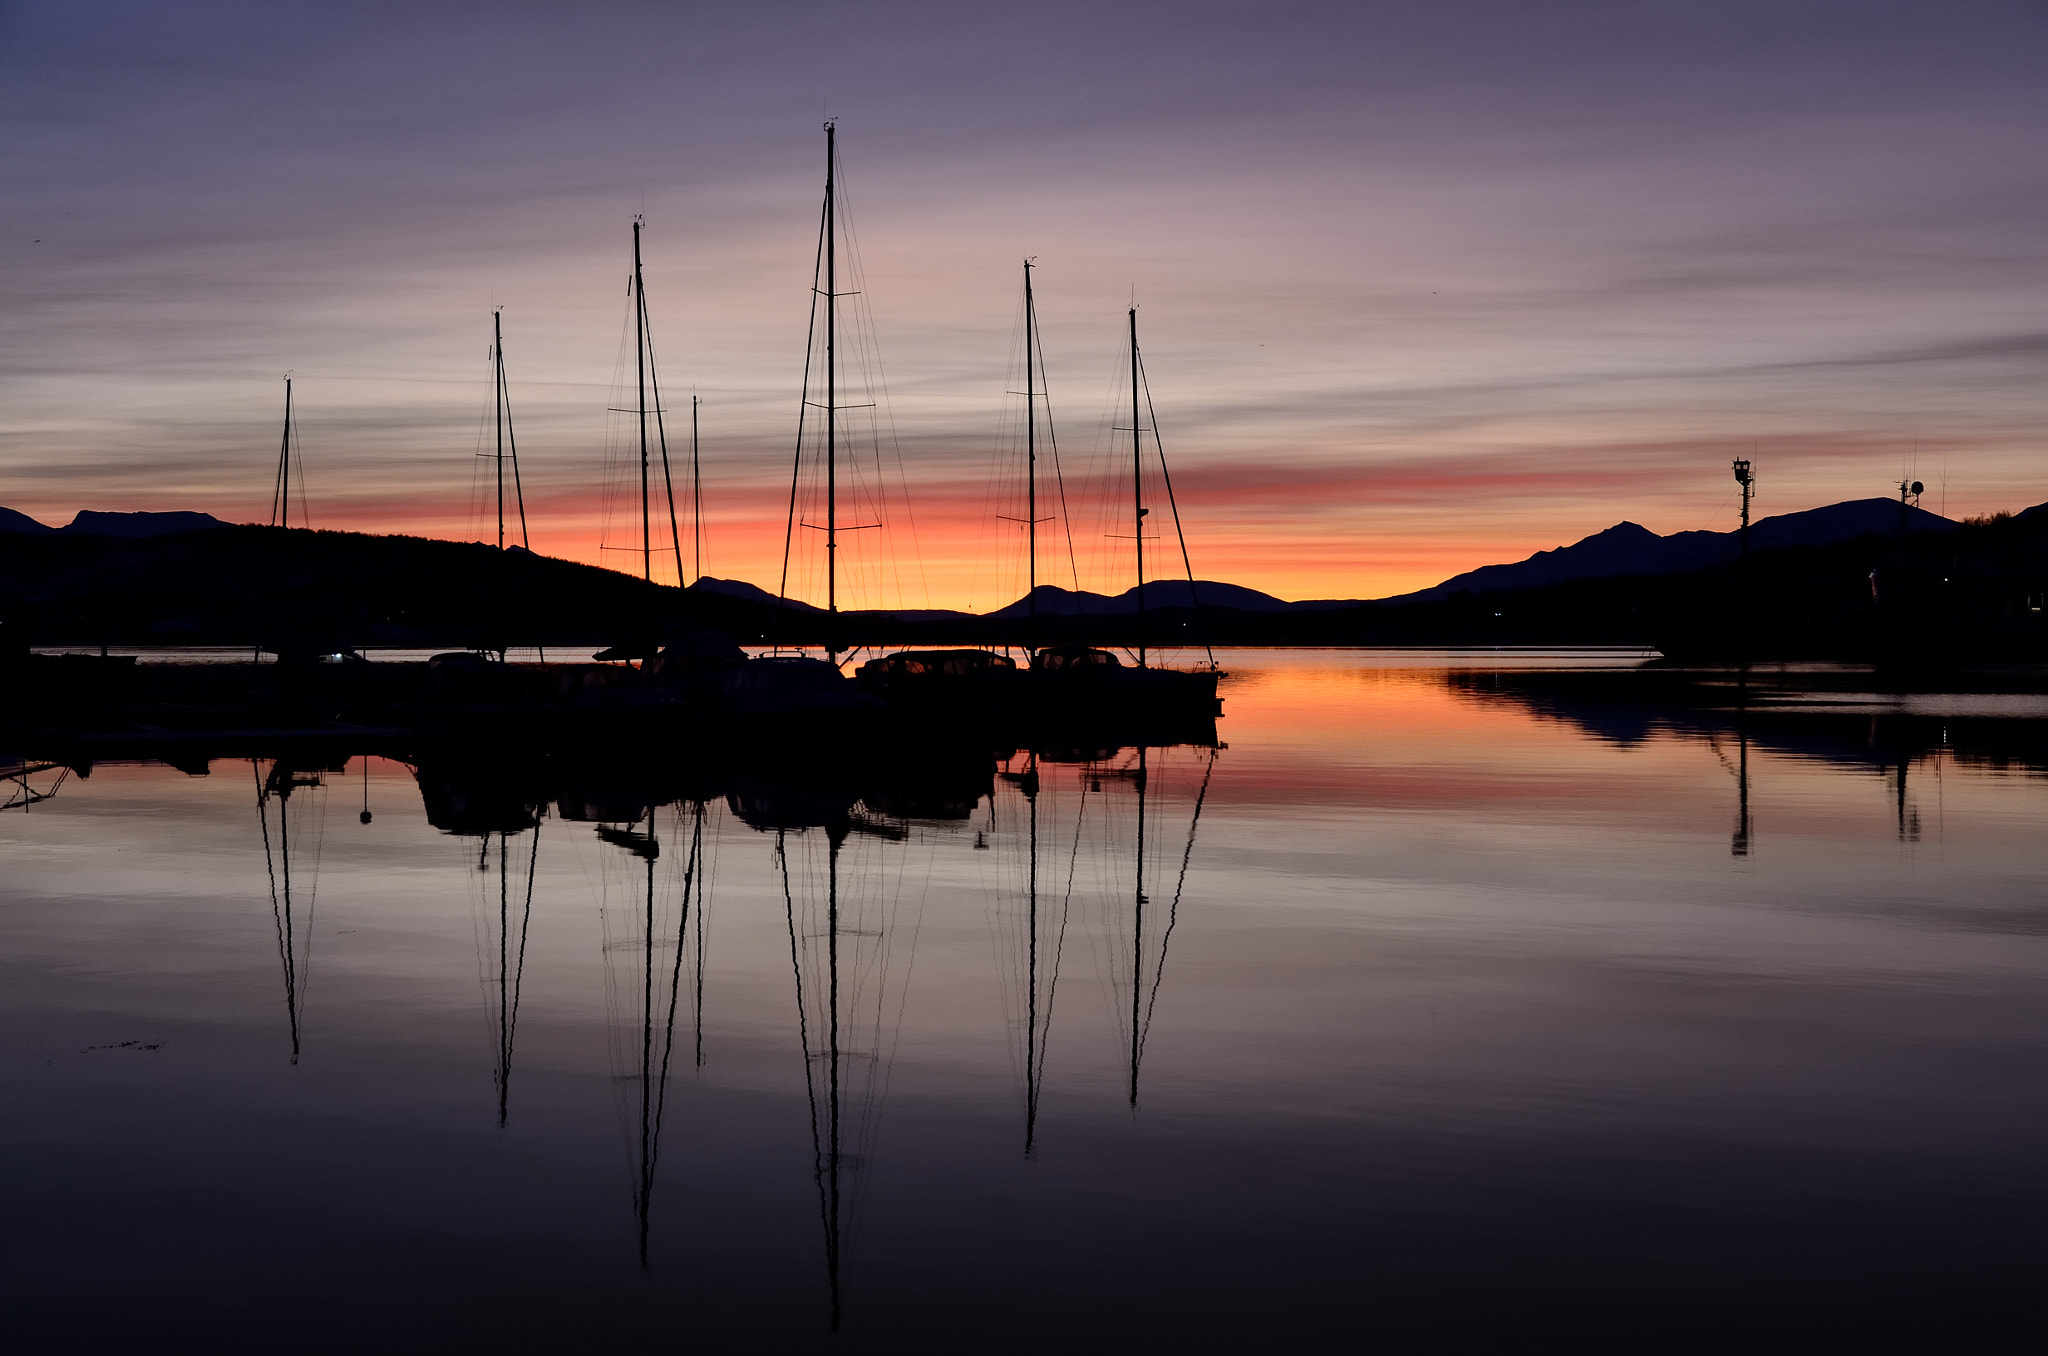 Photograph Daylight in Tromsø des. 23 by John Hemmingsen on 500px